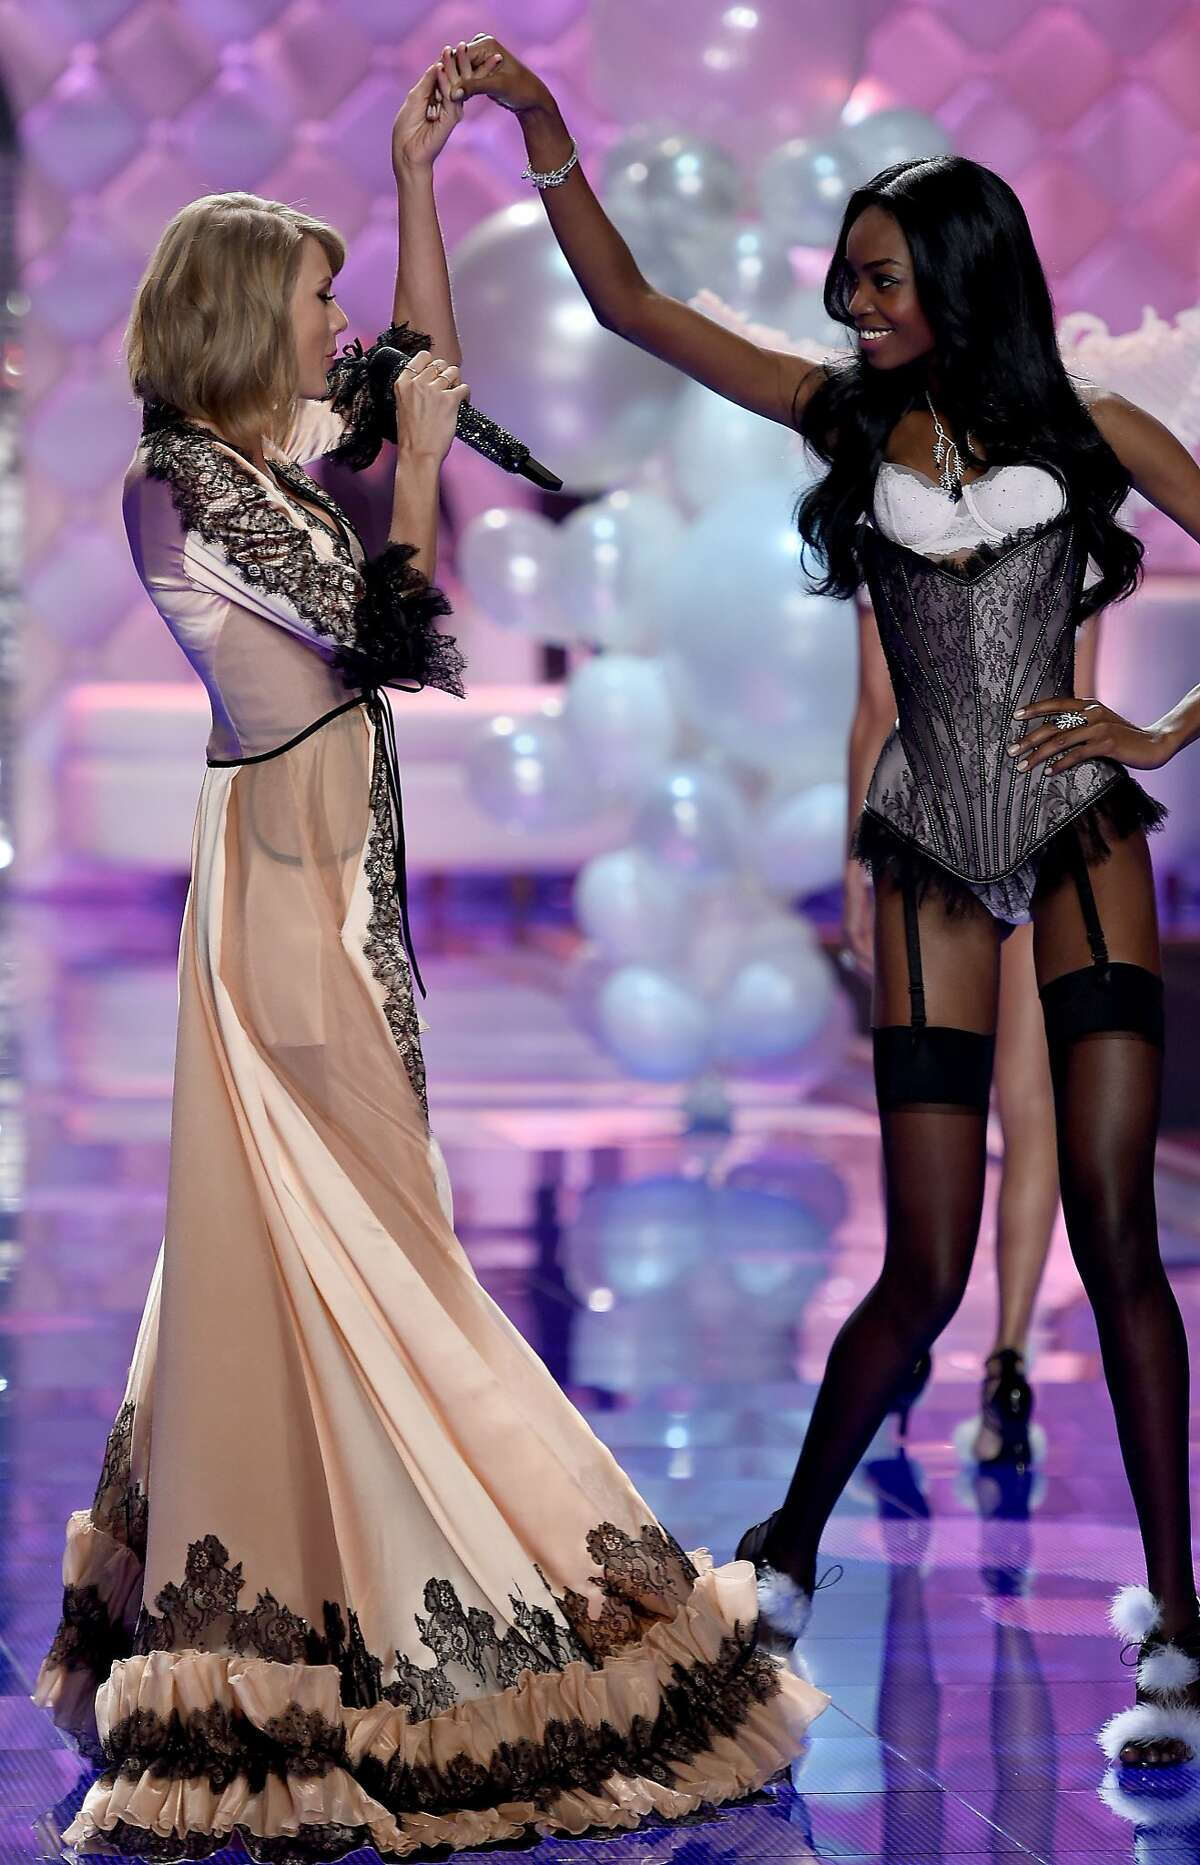 Model Maria Borges (R) and singer Taylor Swift are seen on the runway during the 2014 Victoria's Secret Fashion Show at Earl's Court Exhibition Centre on December 2, 2014 in London, England.